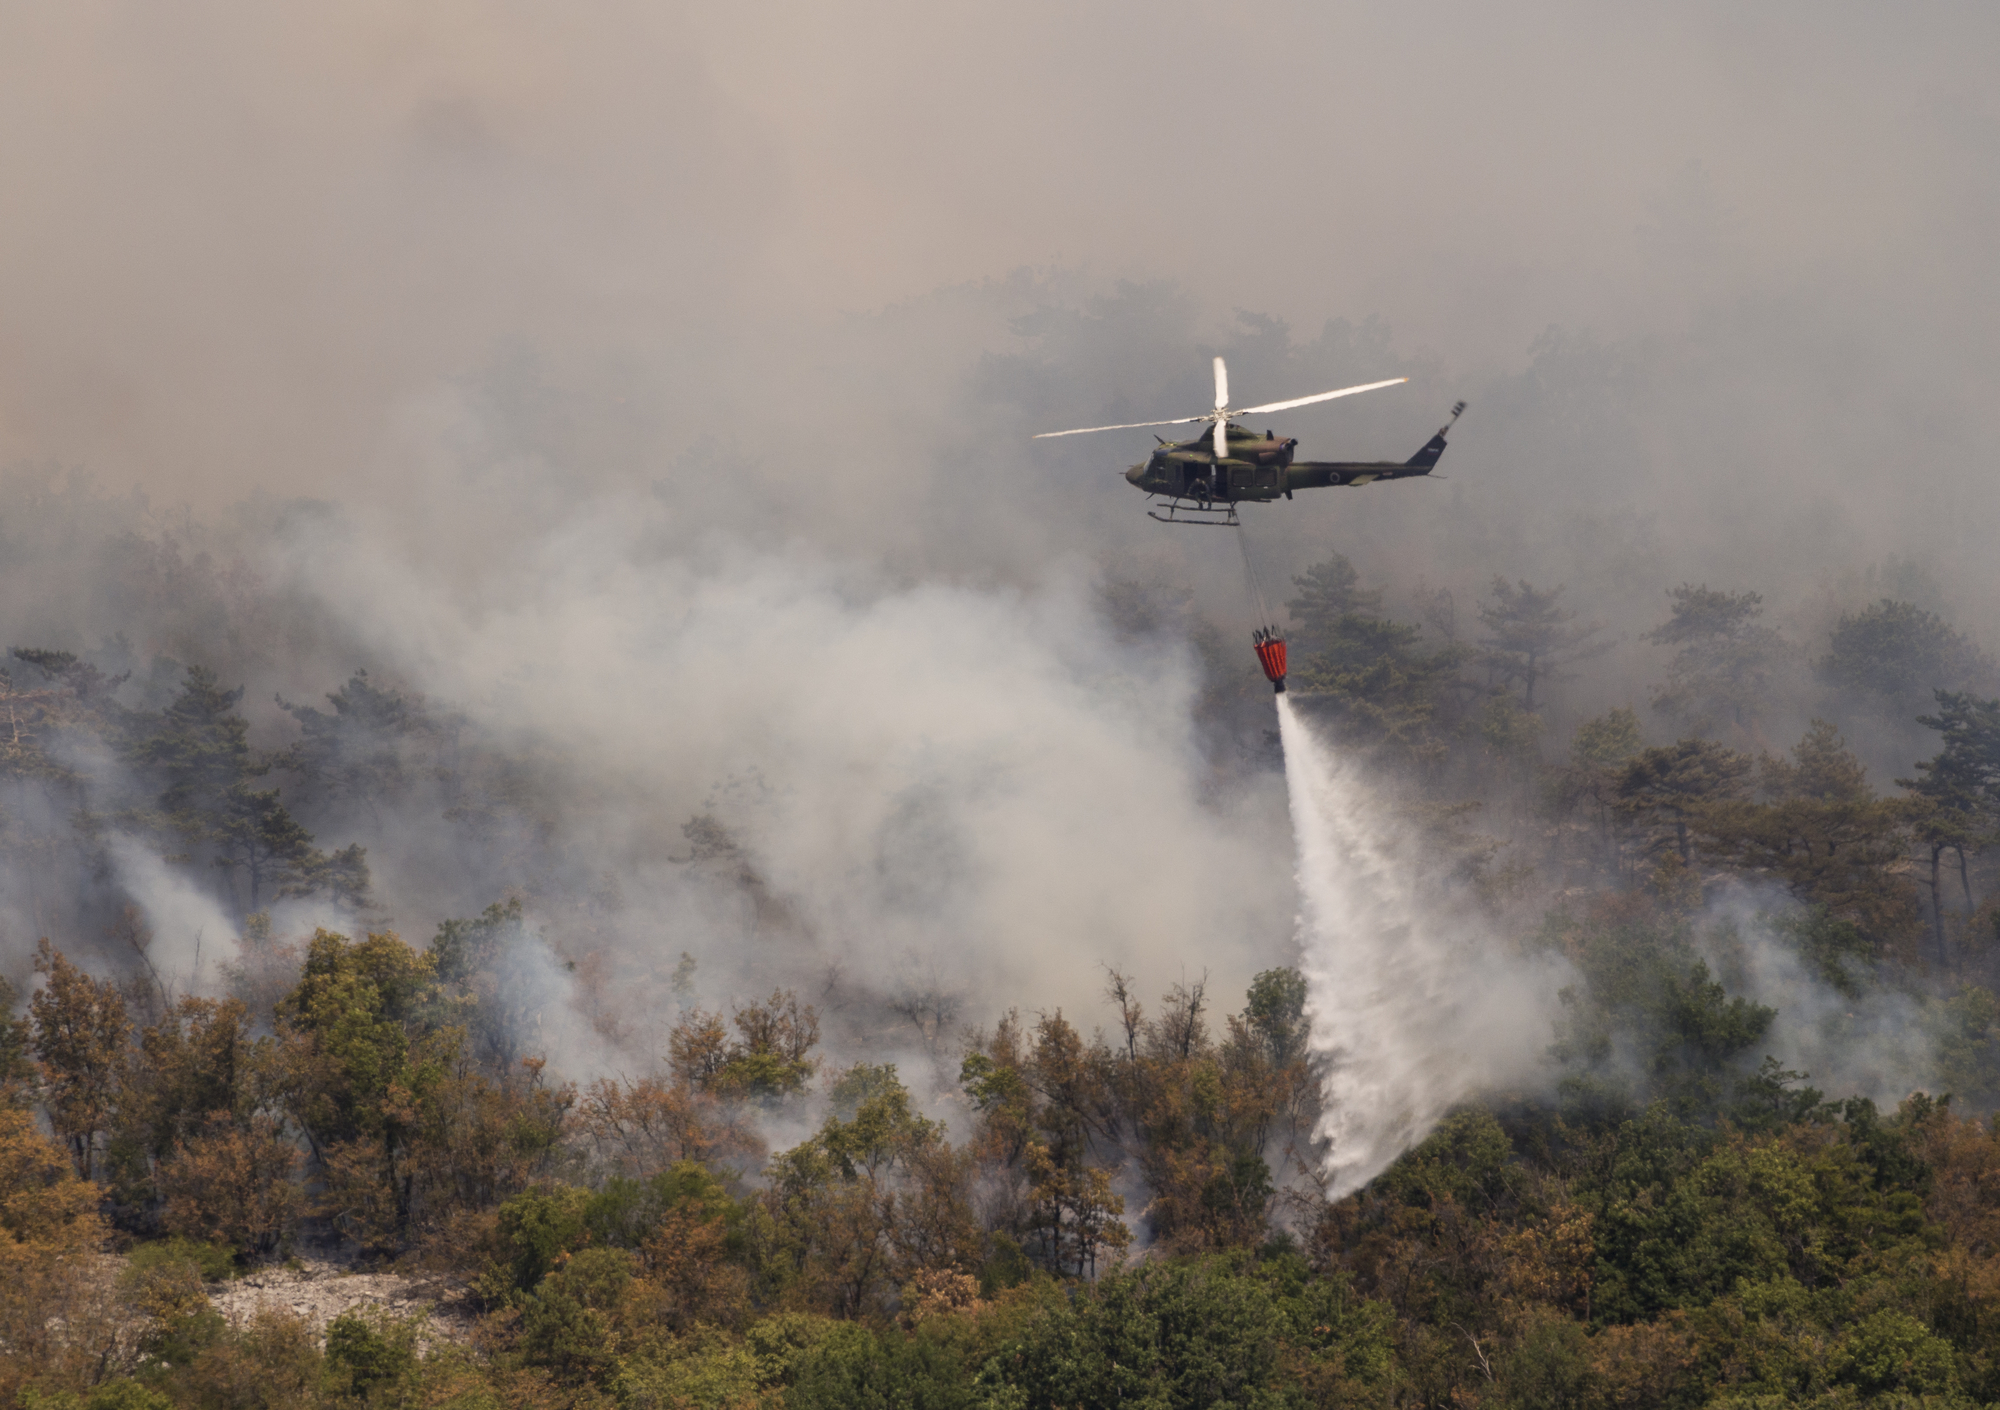 What world leaders are saying about the forest fires in the Amazon